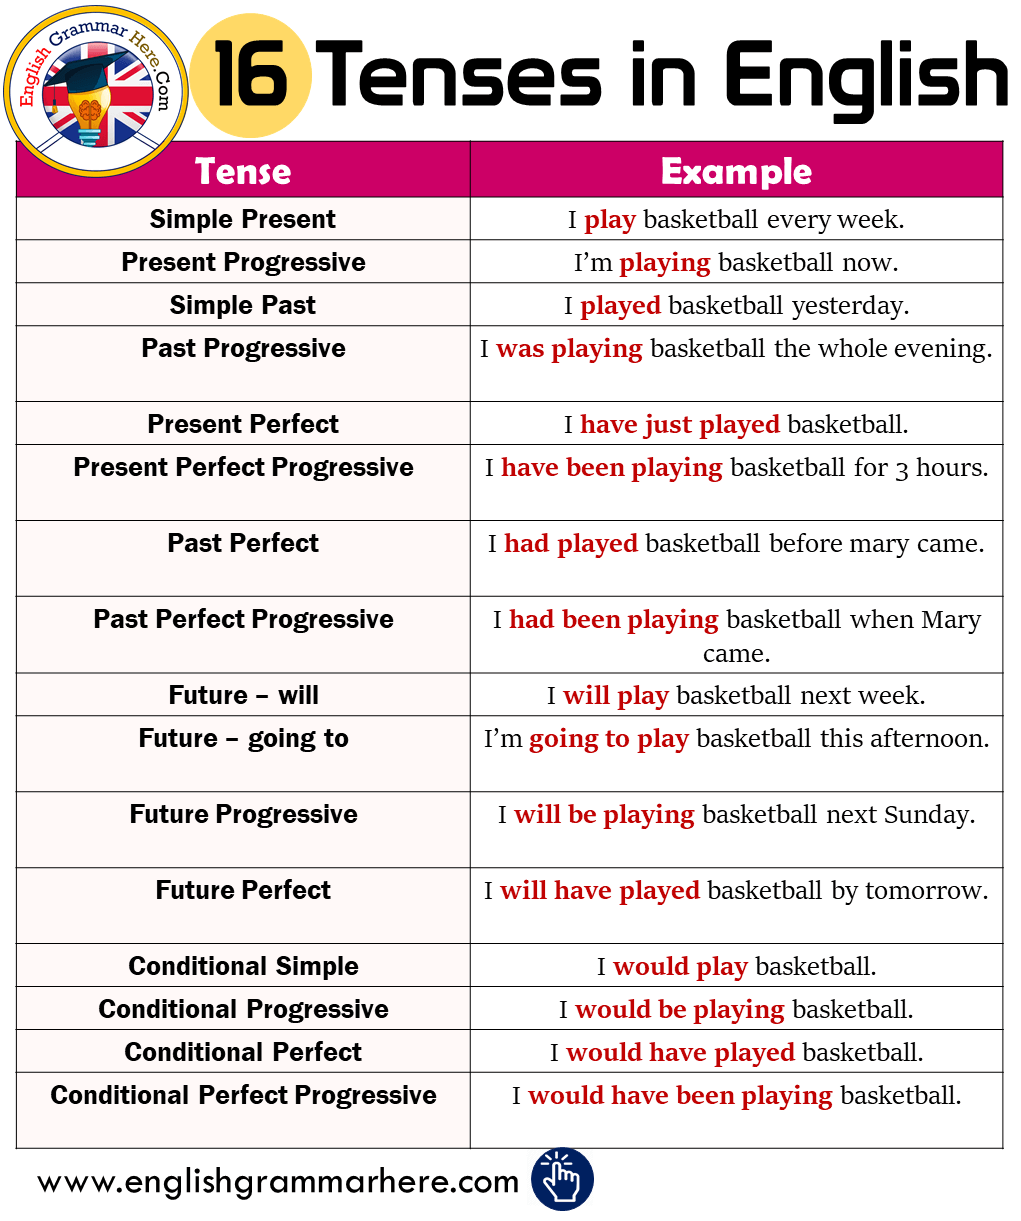 16 Tenses And Example Sentences In English English Sentences English Grammar Tenses English Grammar [ 1221 x 1021 Pixel ]